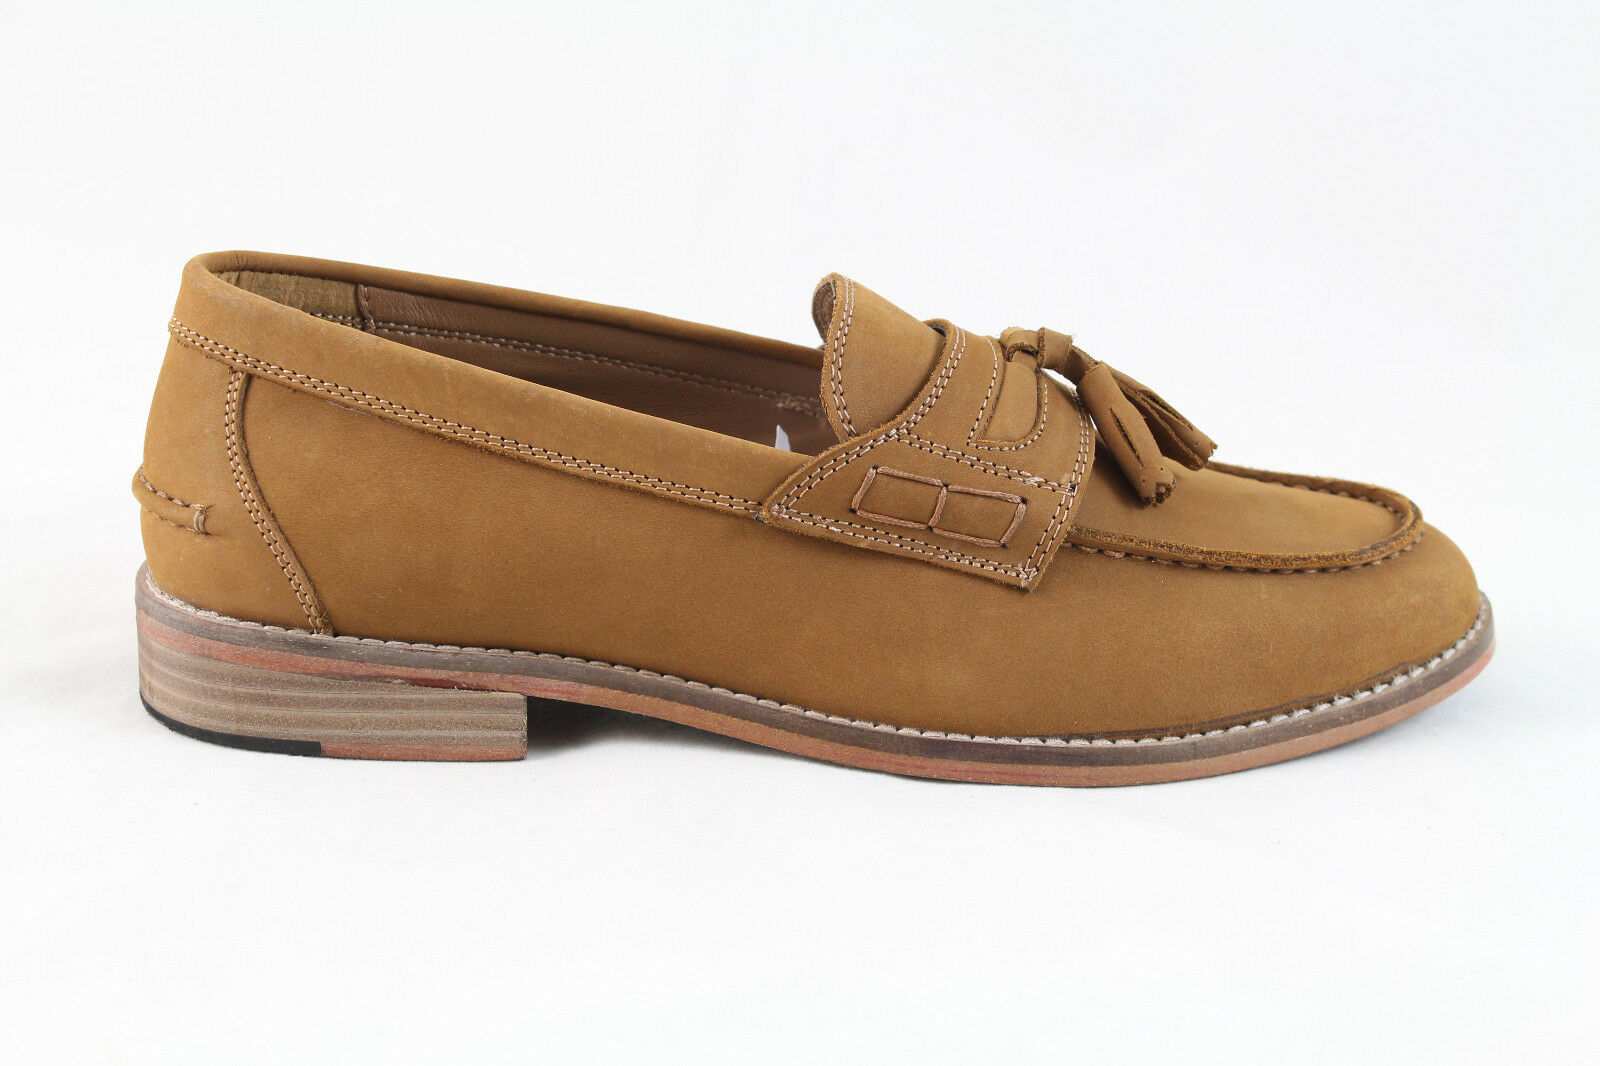 Justin Reece Mens Leather Morris Tassel Loafers Shoes Tan Camel Various Sizes